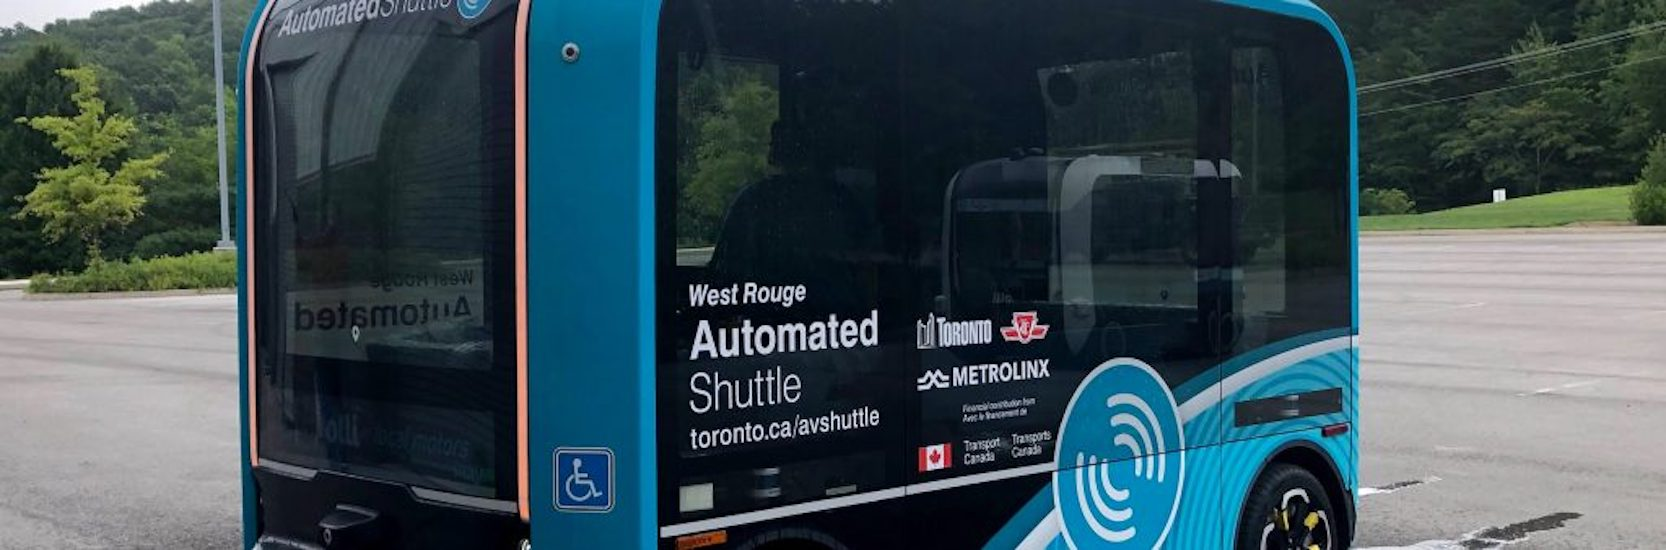 Toronto's new self-driving shuttle bus hits the road this month